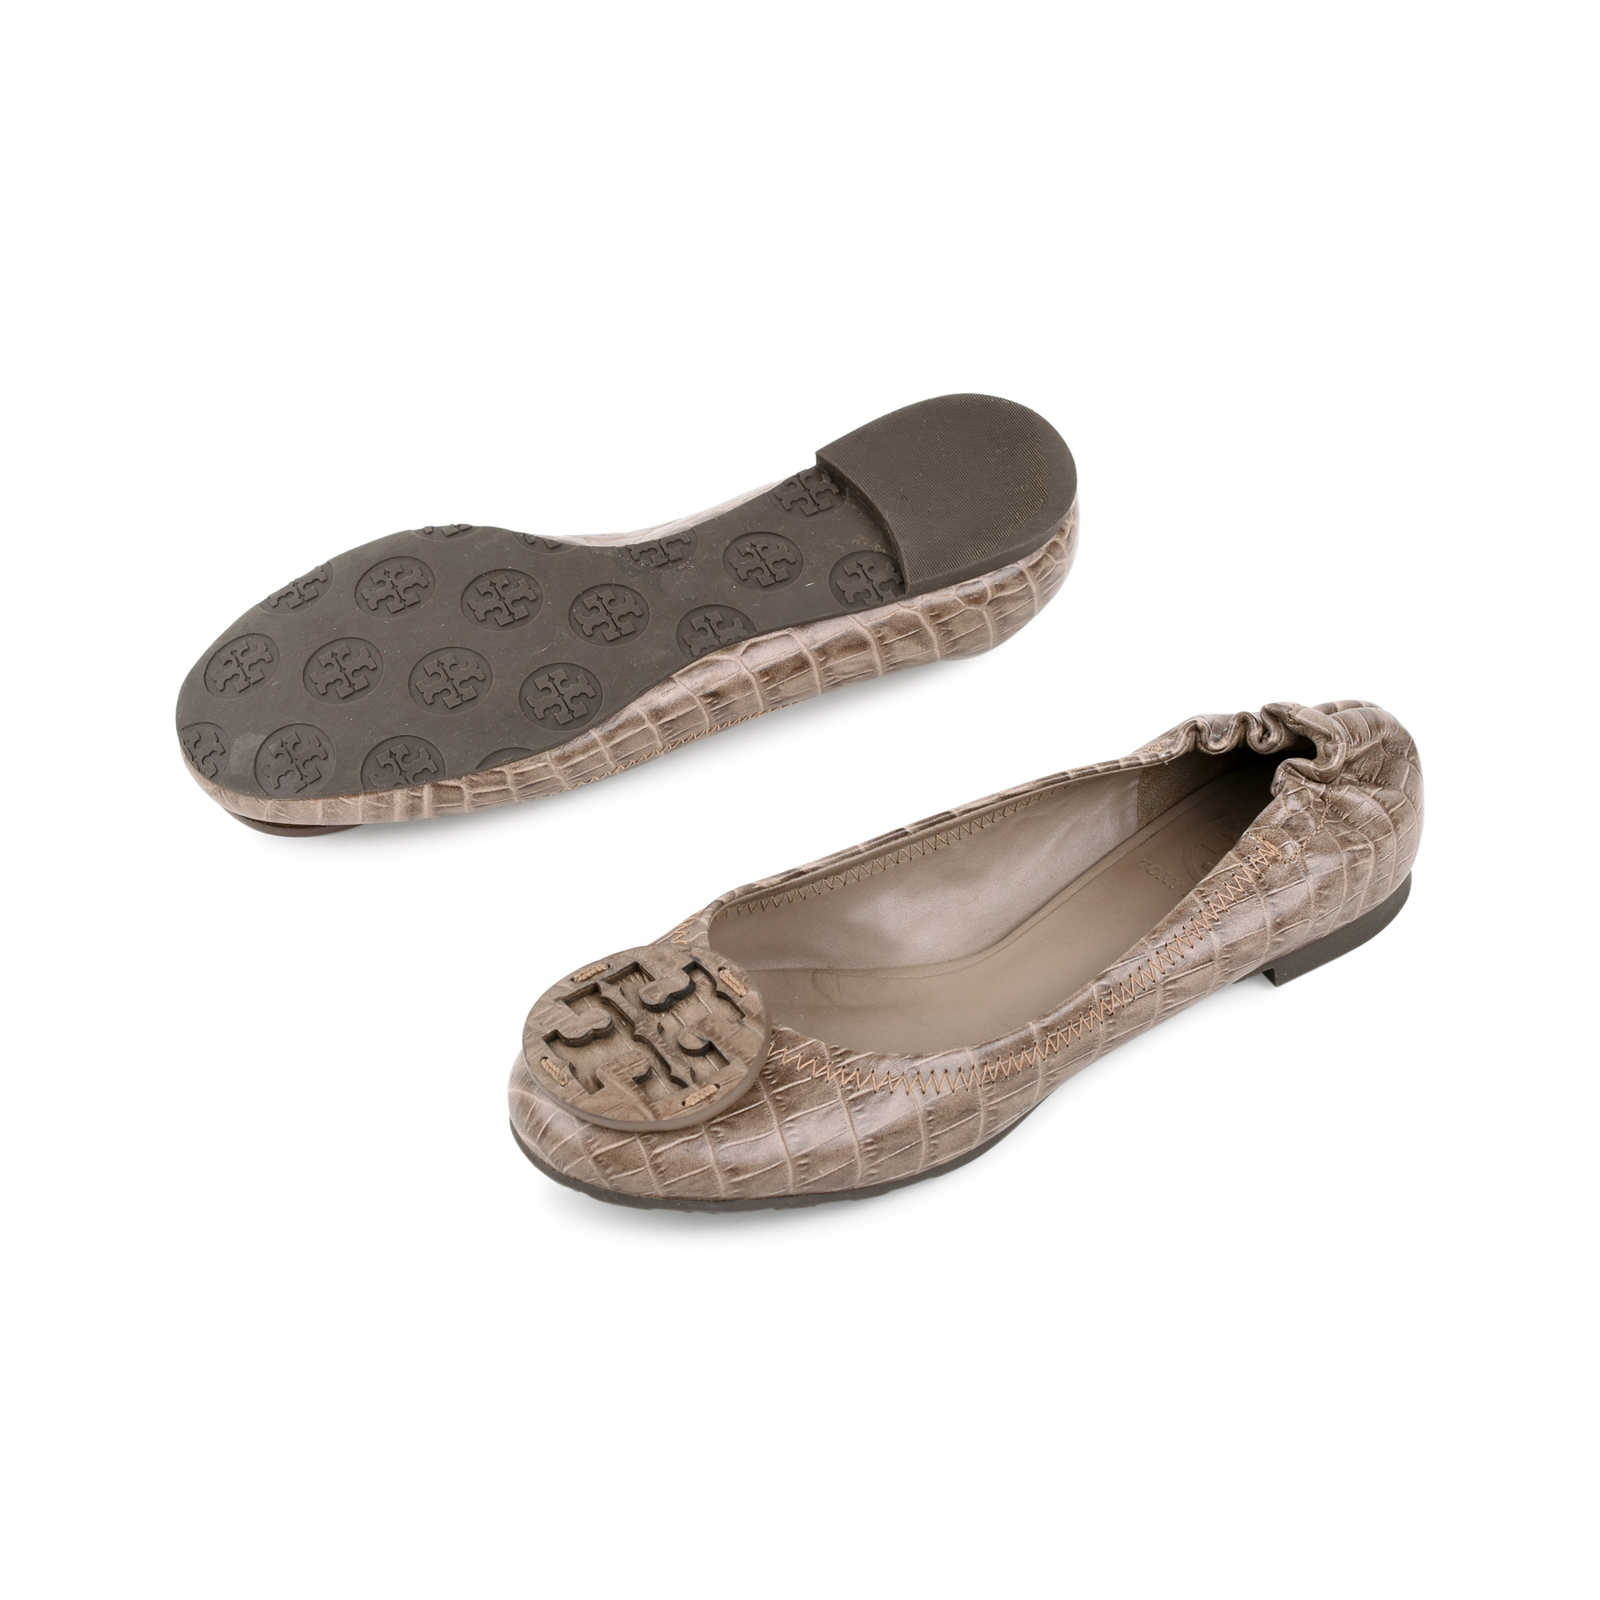 06b13e013d ... Authentic Second Hand Tory Burch Crocodile Embossed reva Flats  (PSS-225-00024) ...